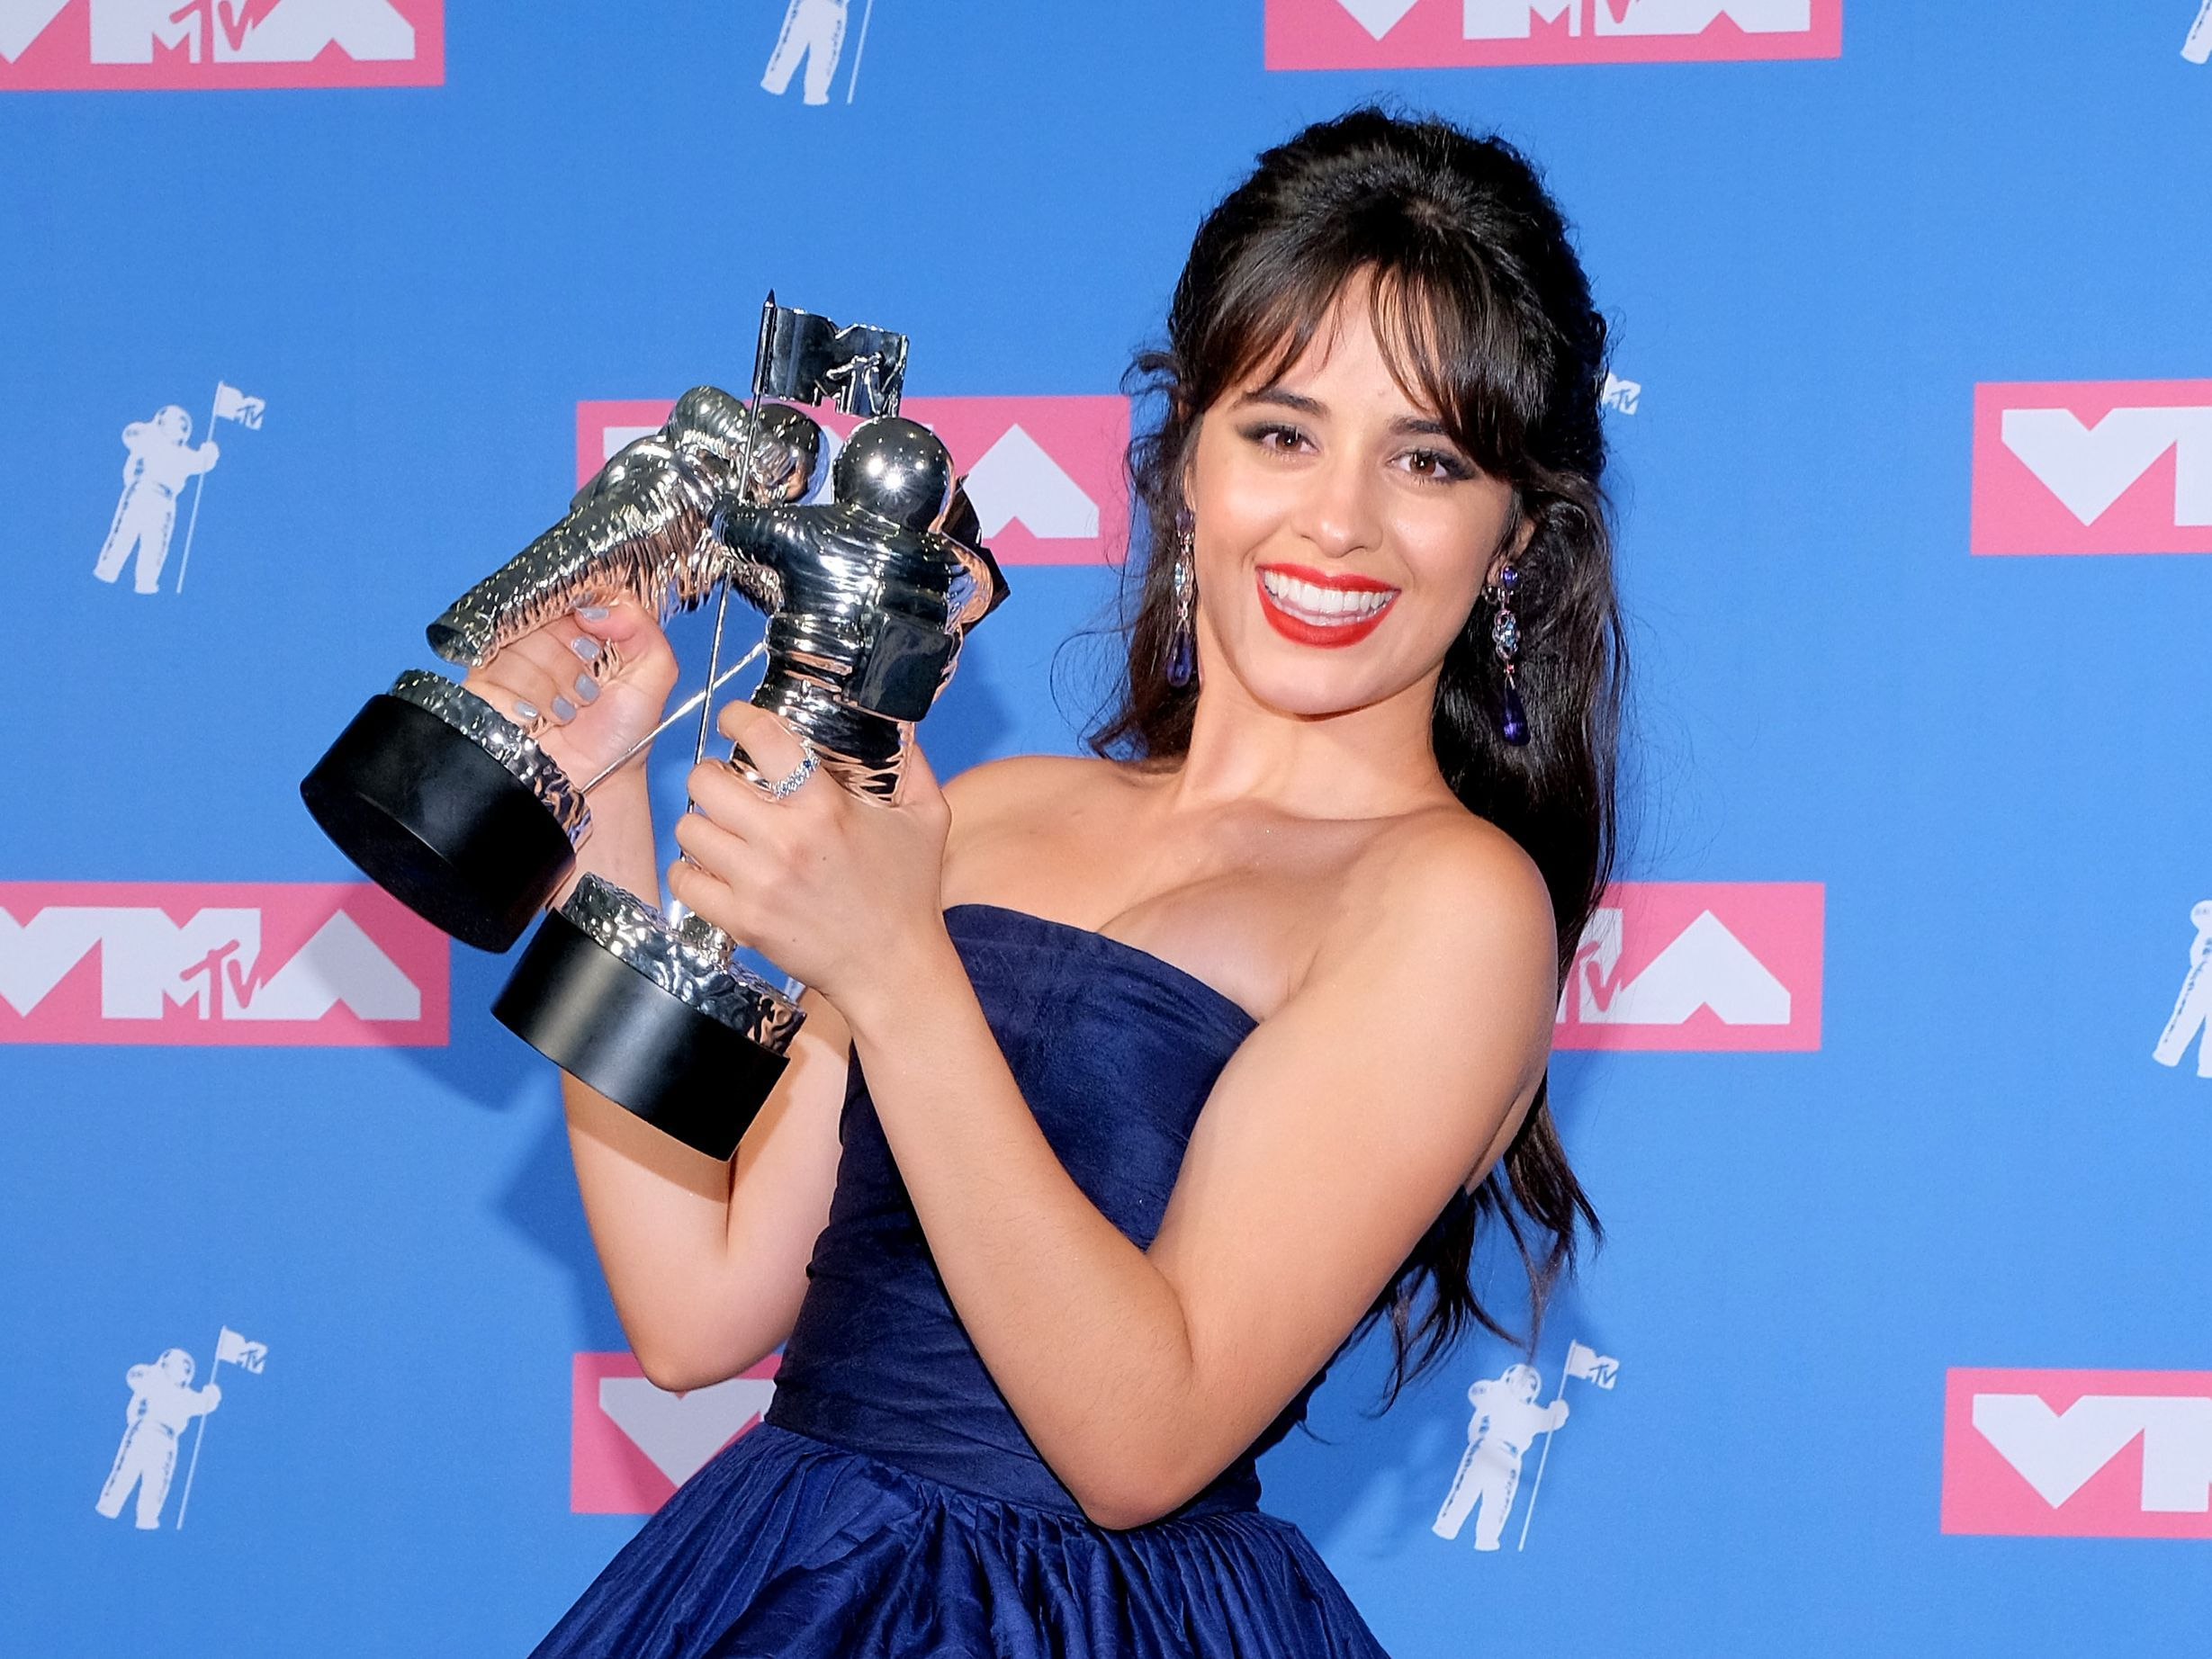 Image result for vma 2019 MTV